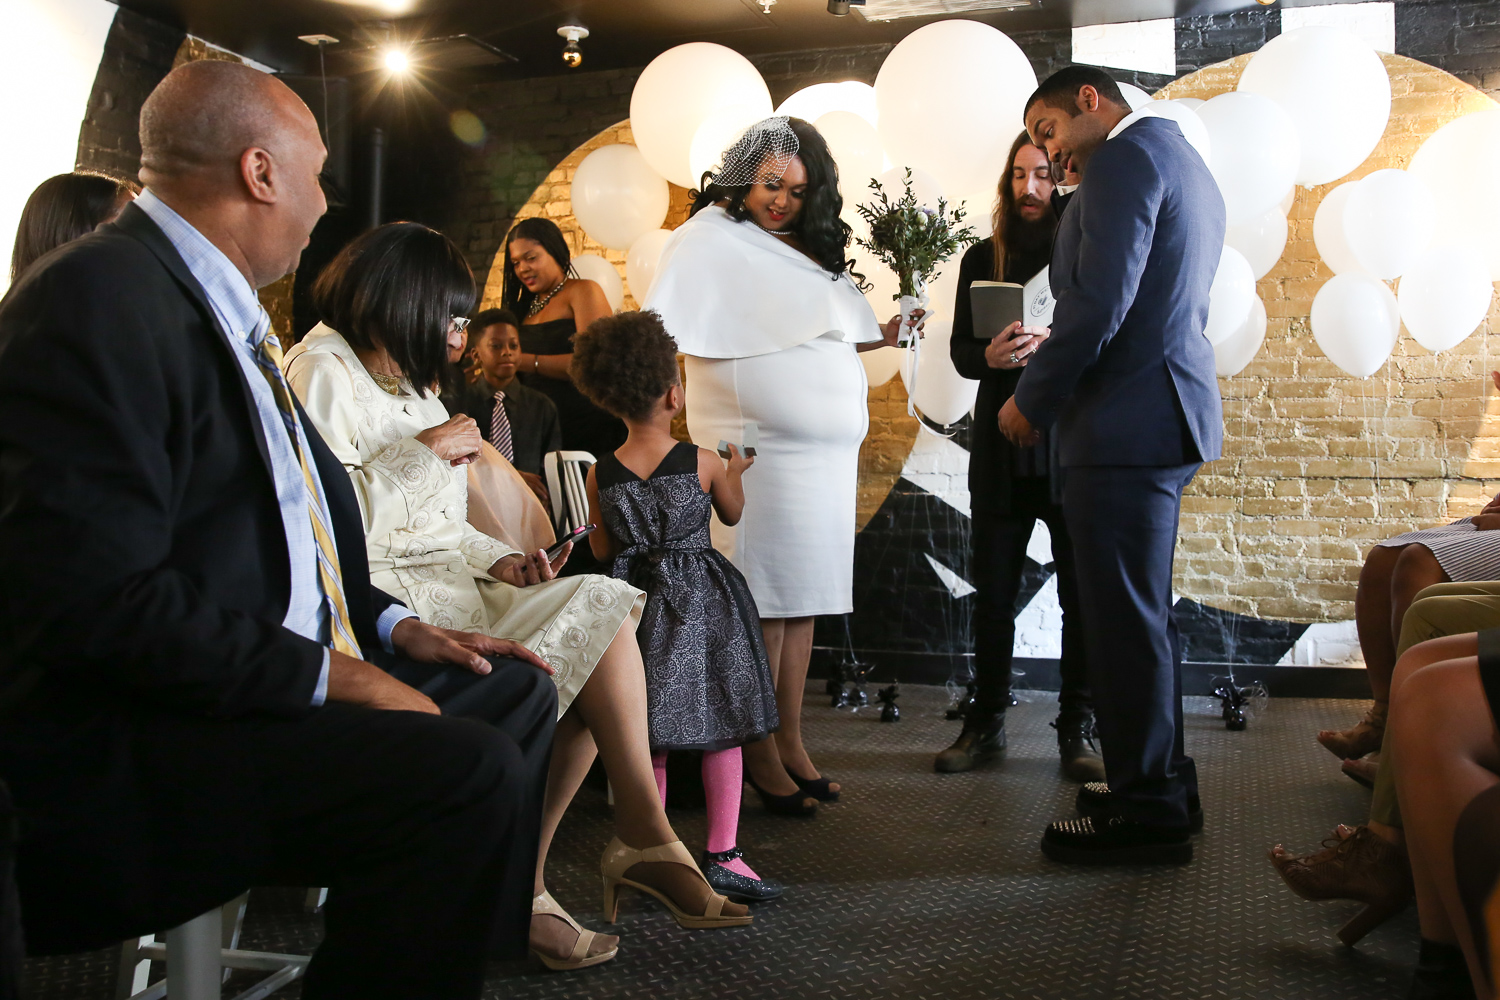 Millie Pinkney-Proctor, 4, served as the ring bearer.{ }(Amanda Andrade-Rhoades/DC Refined)